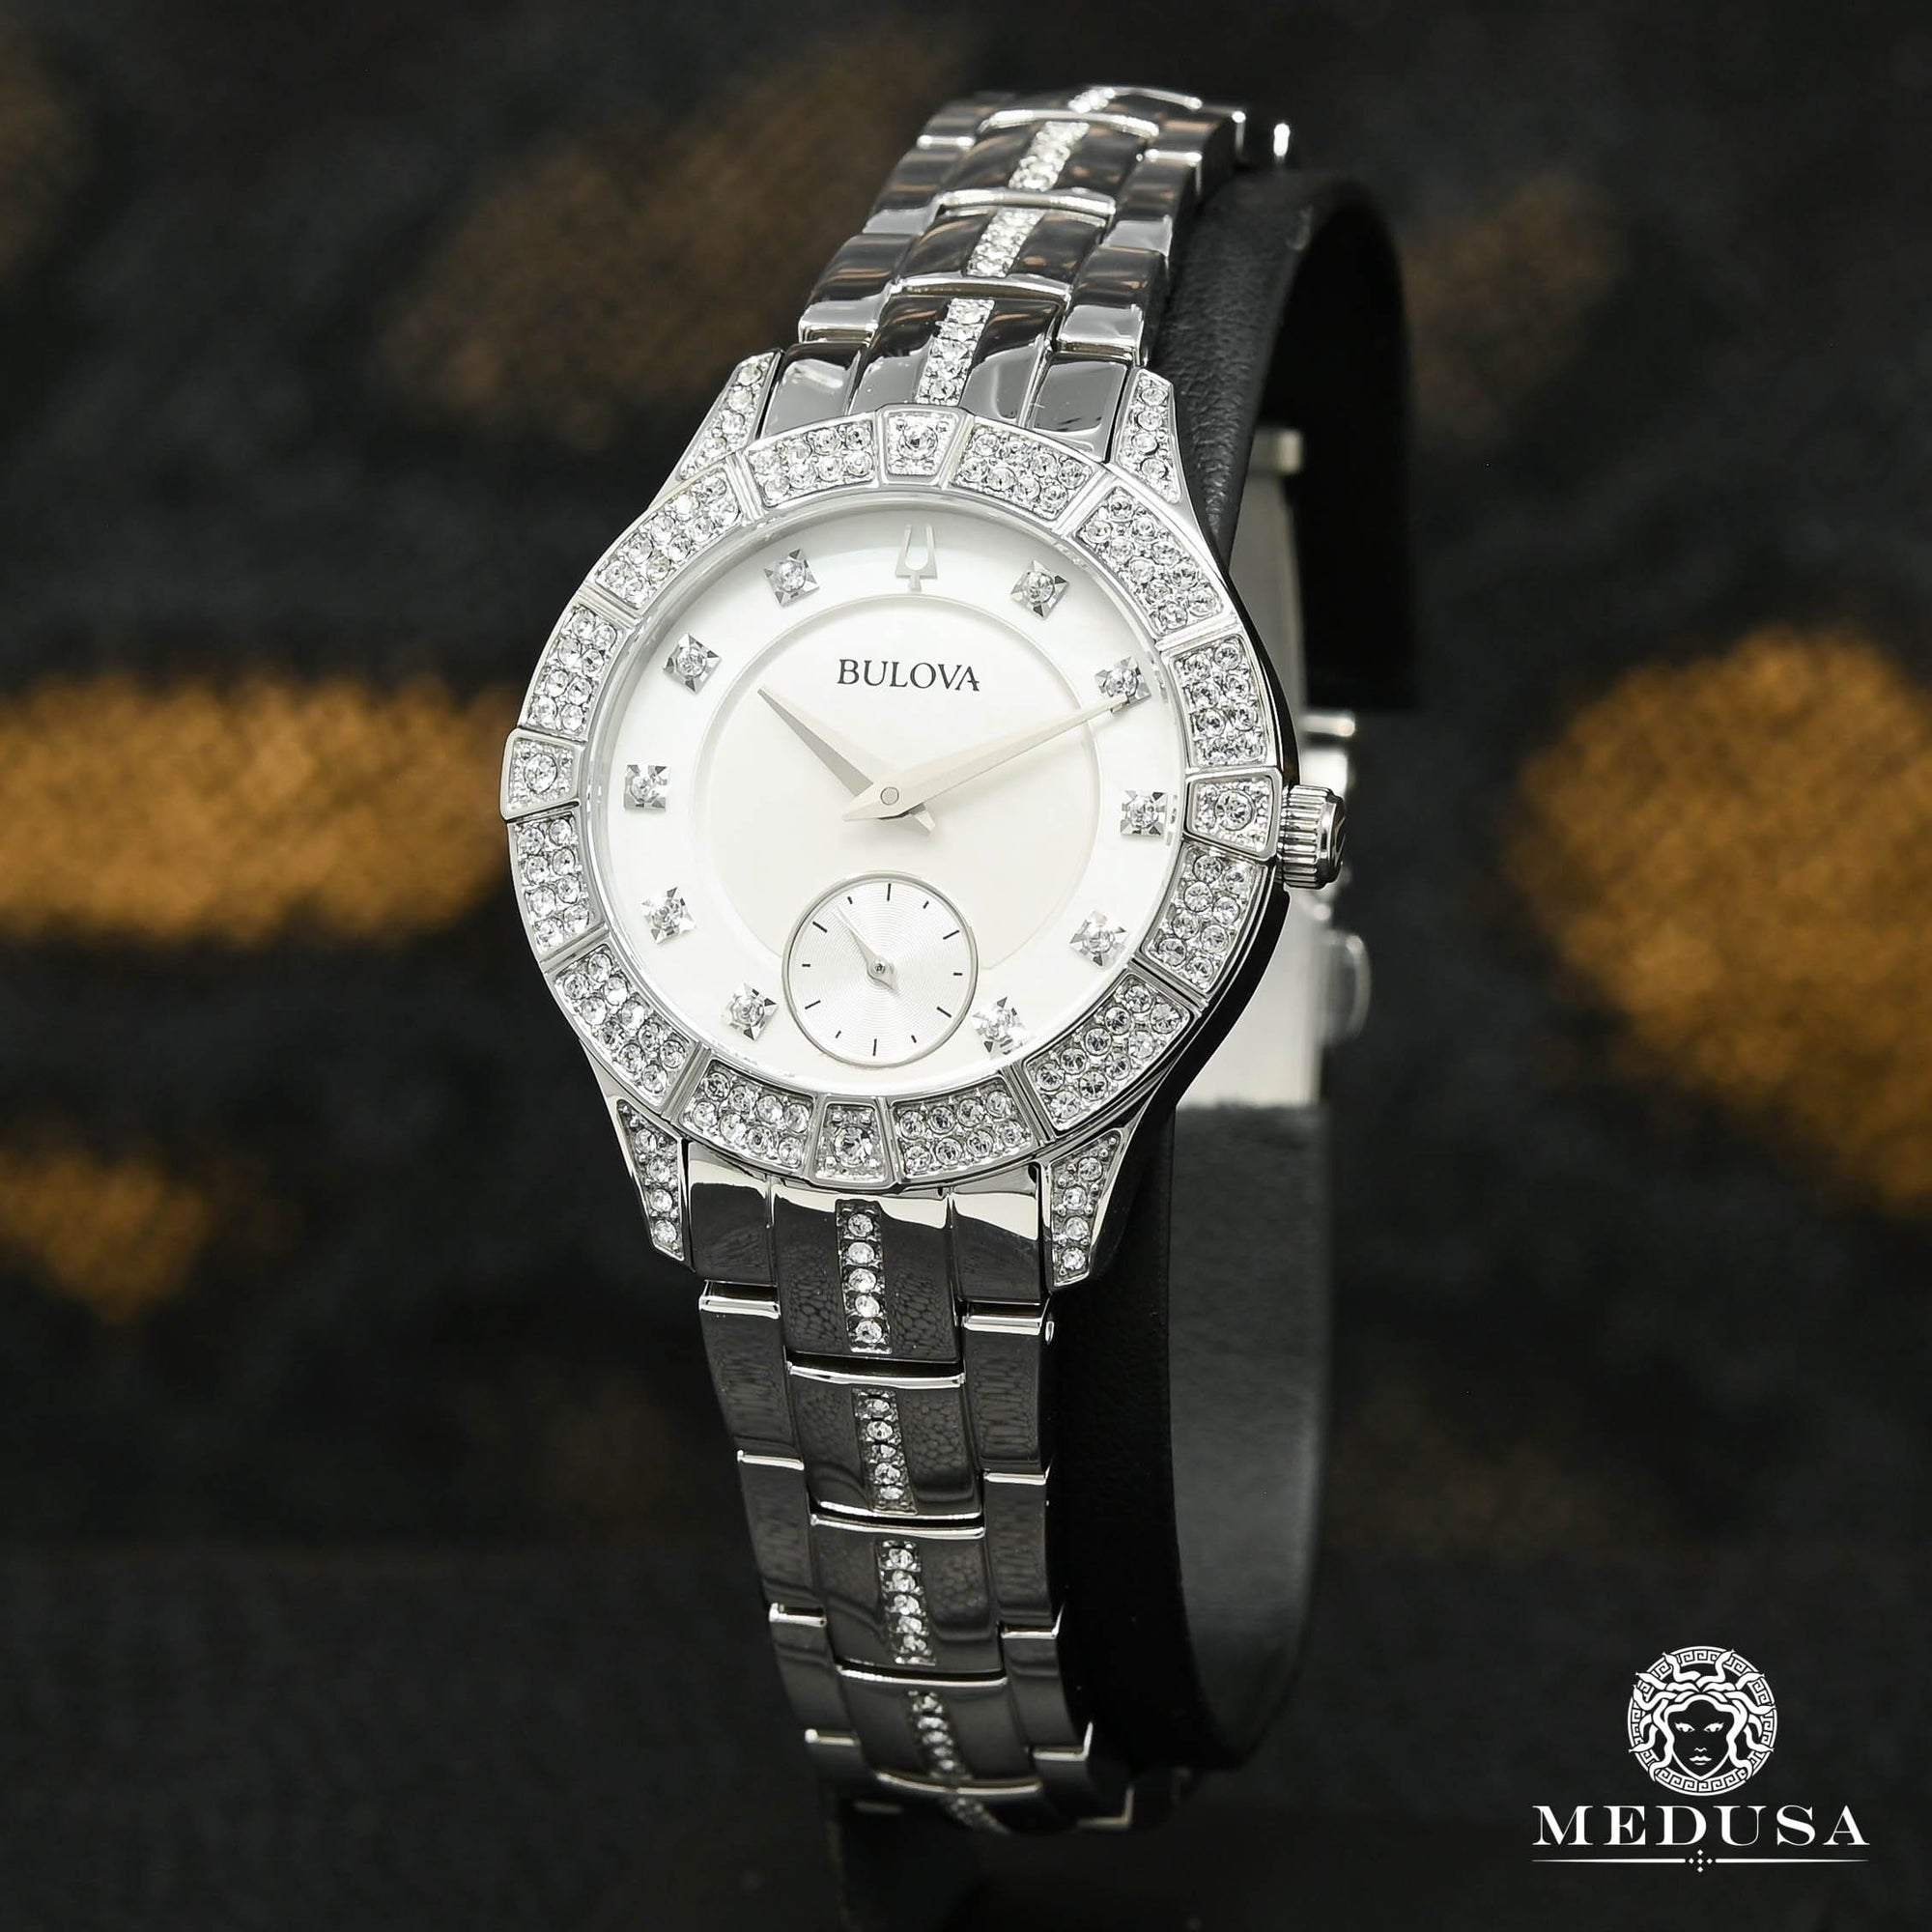 Bulova Watch | Bulova Phantom Ladies Watch - 96L291 Stainless